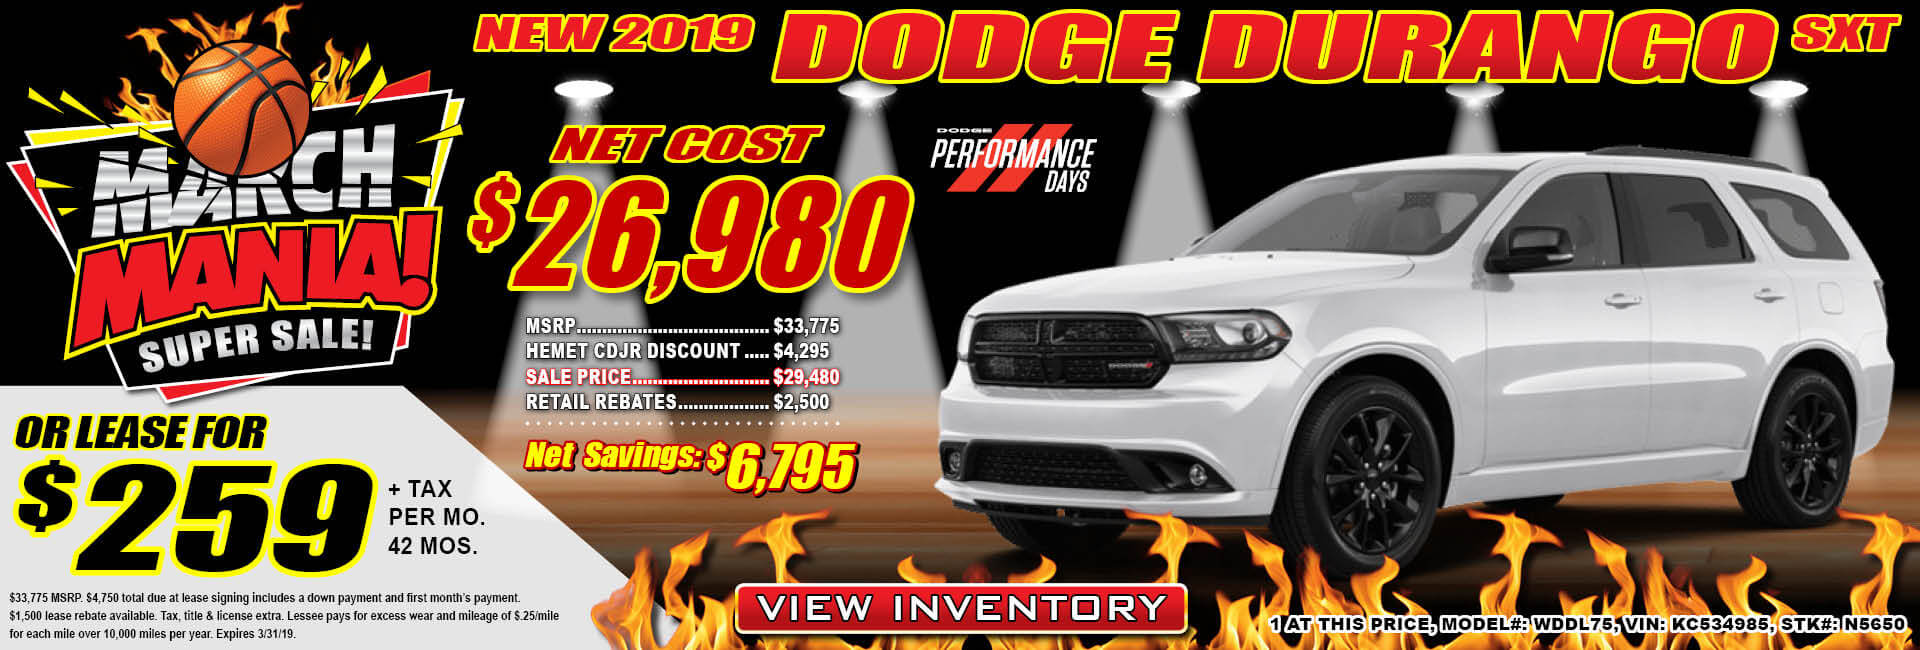 Dodge Durango $259 Lease